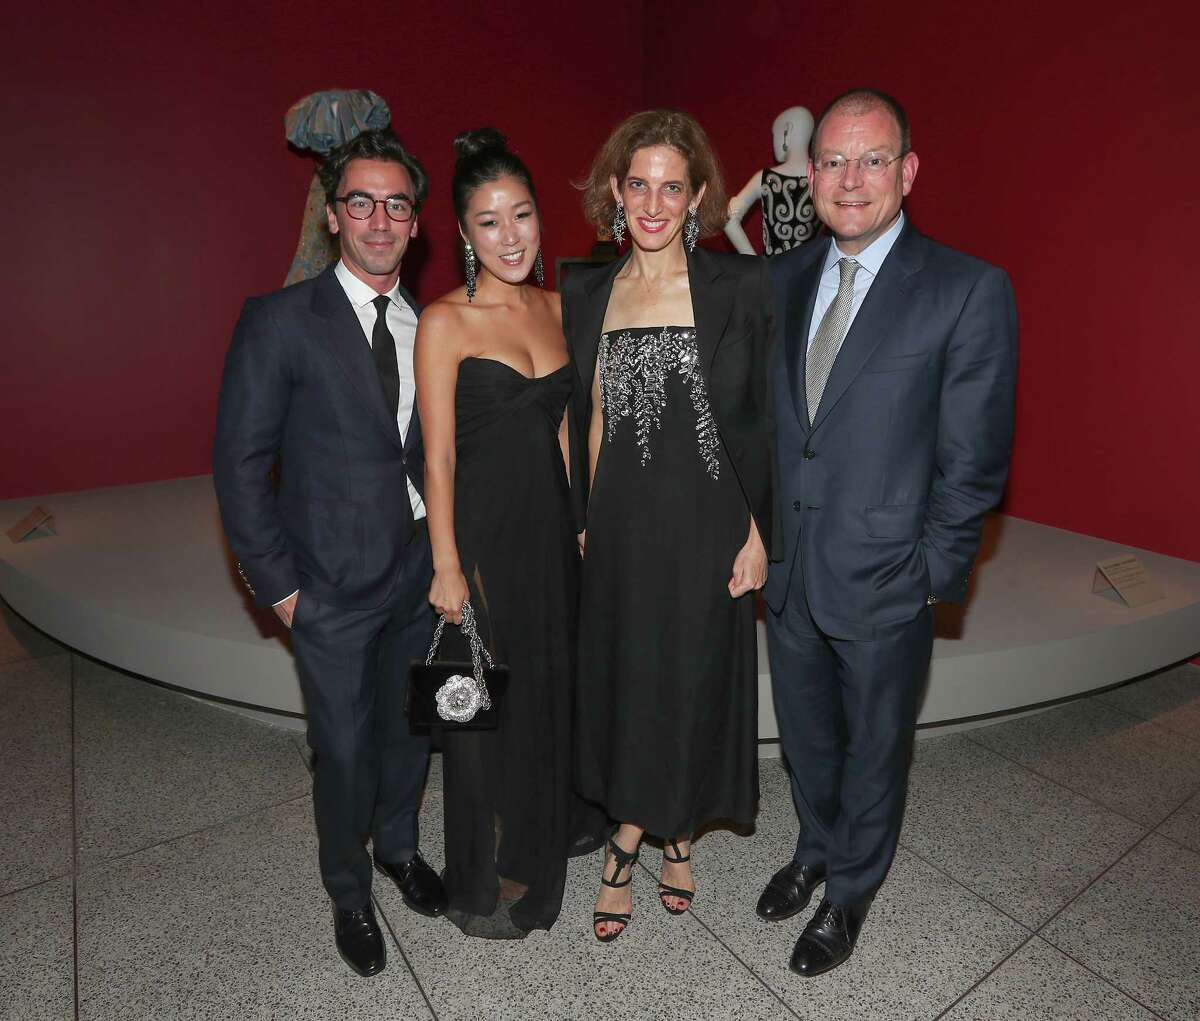 Oscar de la Renta designers Fernando Garcia and Laura Kim with de la Renta?•s stepdaughter Eliza Bolen and her husband, Alex Bolen, CEO of Oscar de la Renta LLC at the Museum of Fine Arts, Houston exhibition